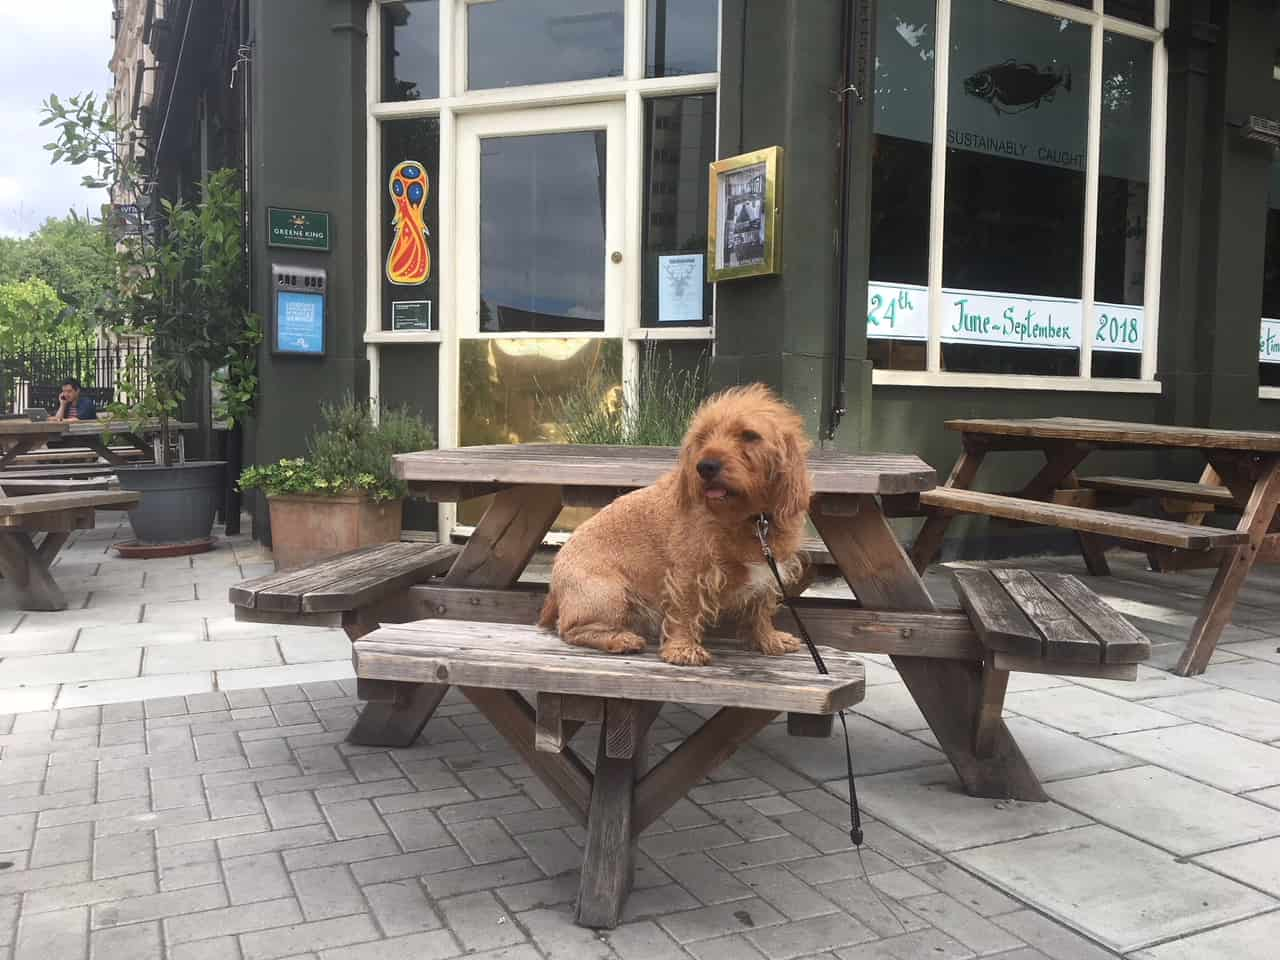 My Dog Friendly London By Amber - Dog Friendly Elephant & Castle - The Stag 1